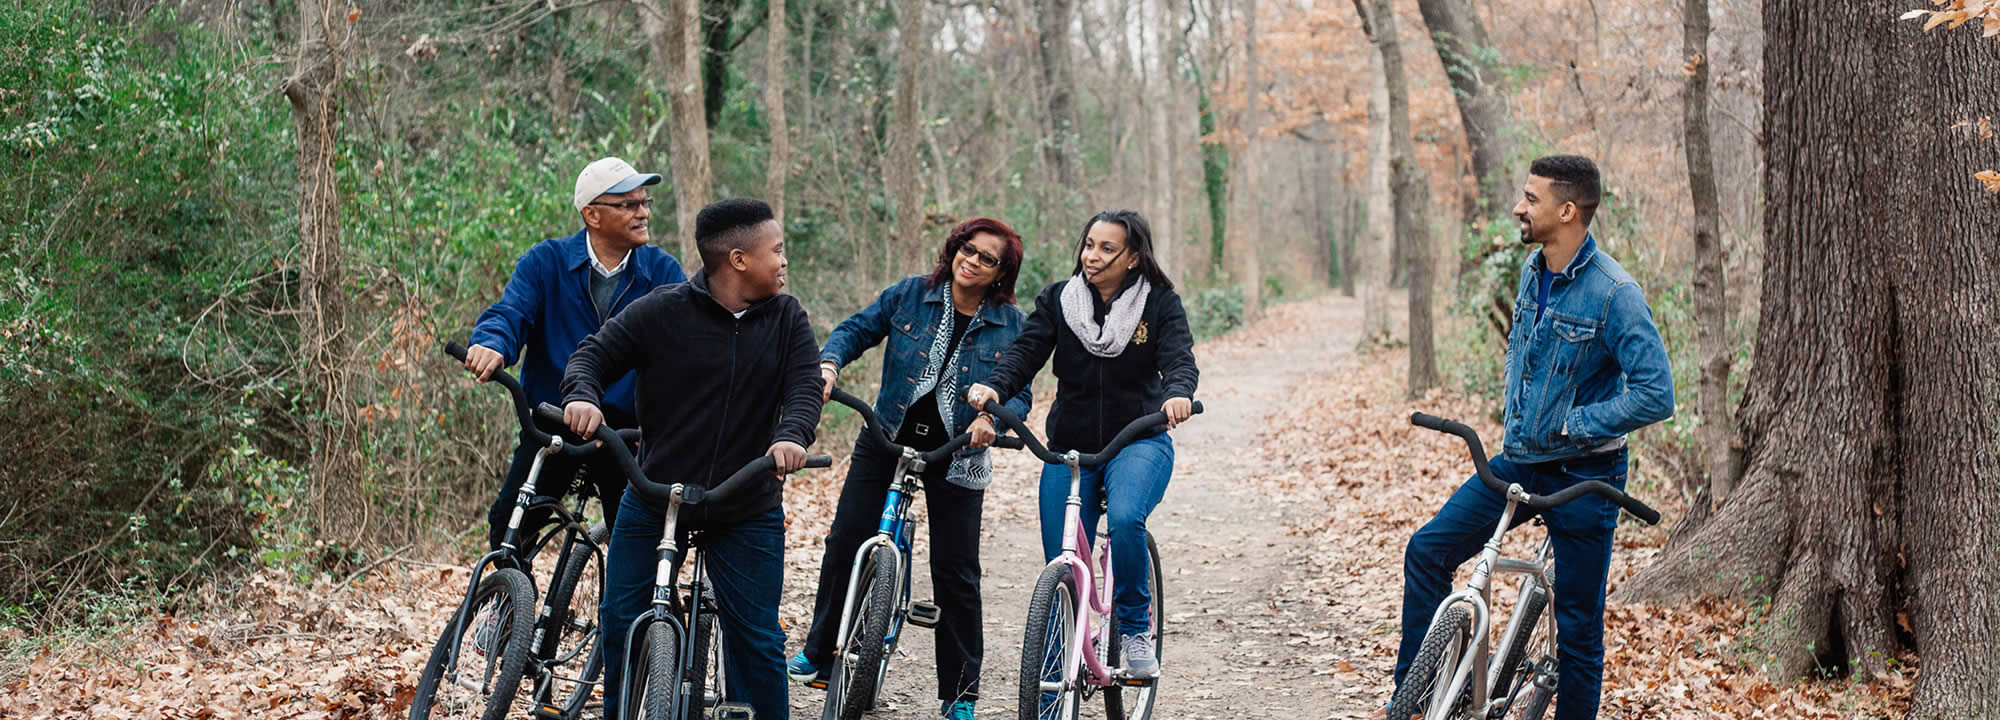 Check out a free bike on the Roanoke Canal Trail